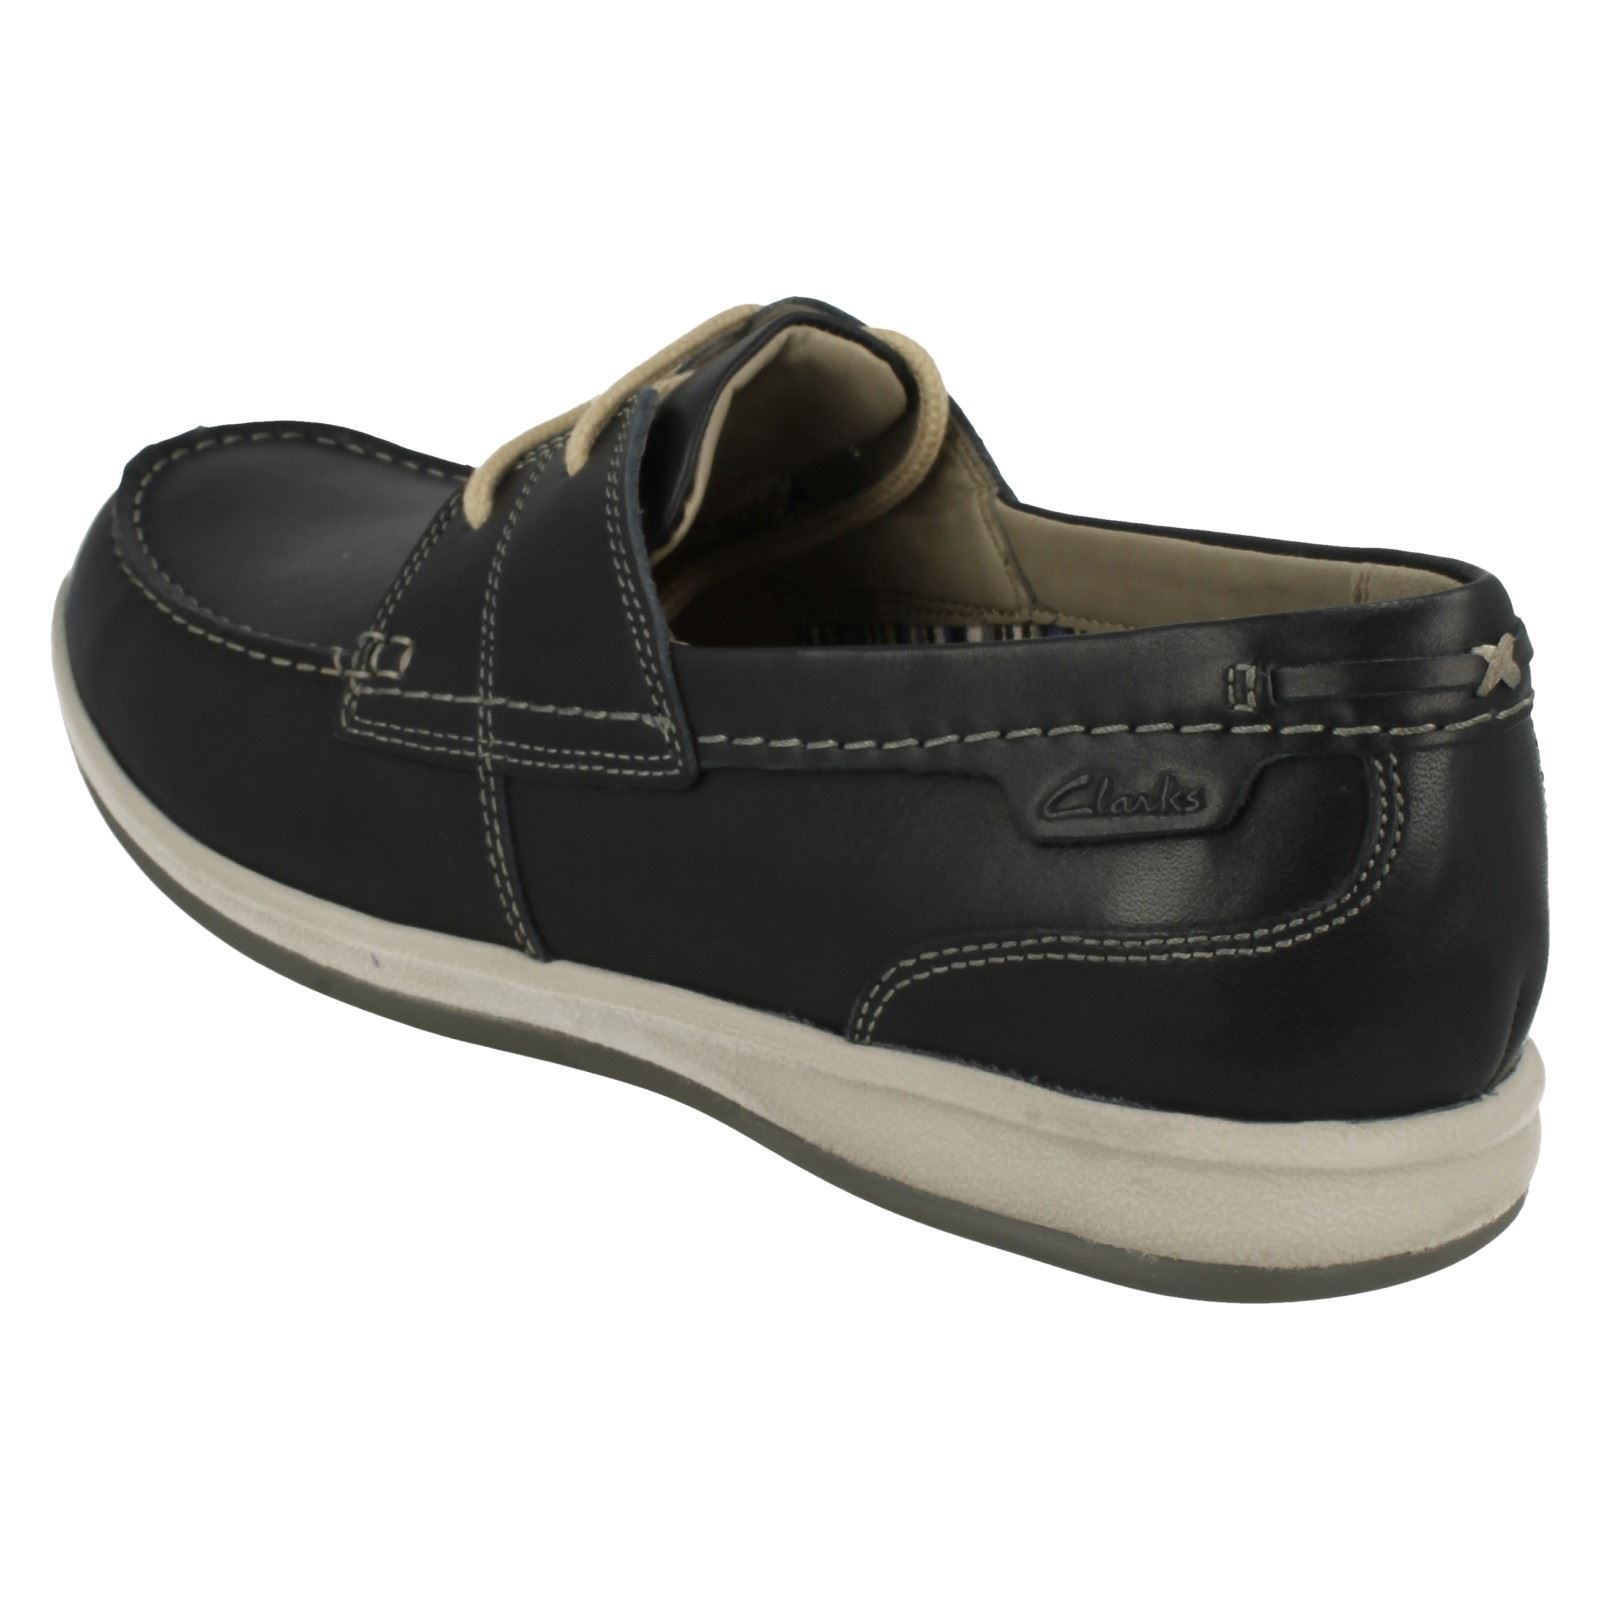 fällstol mio ~ mens clarks moccasin casual lace up shoes fallston style